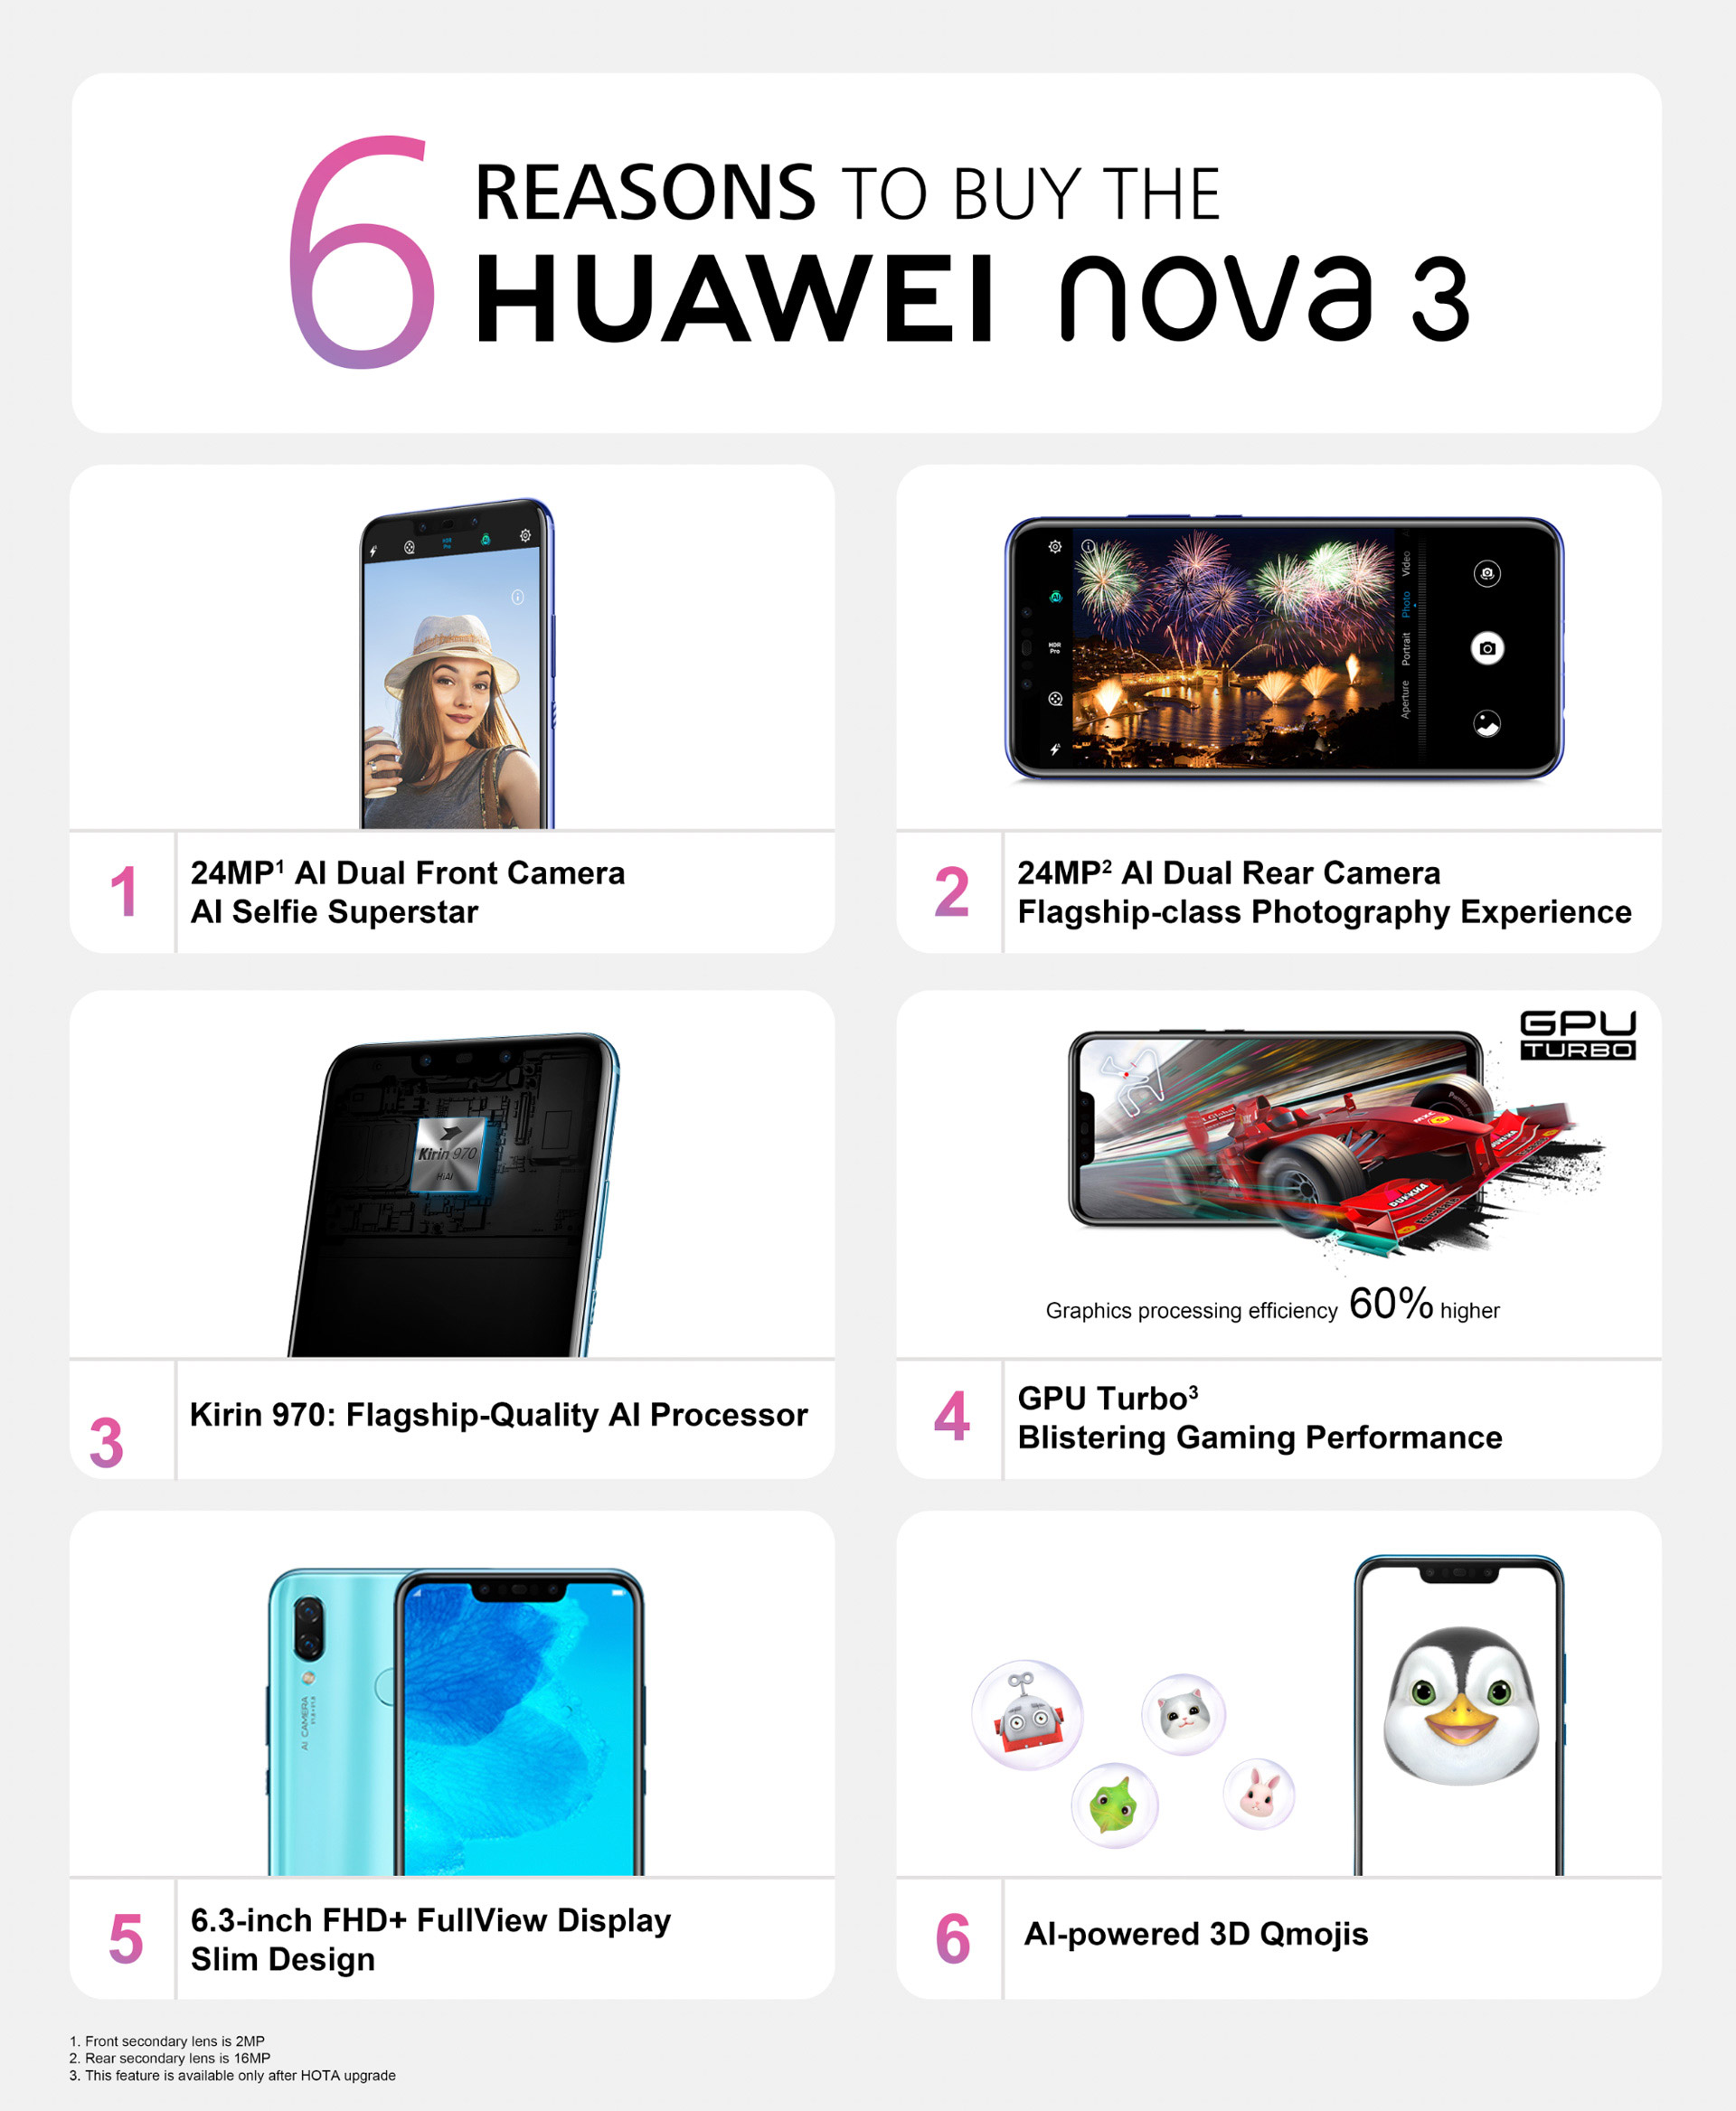 Six reasons to buy the HUAWEI nova 3